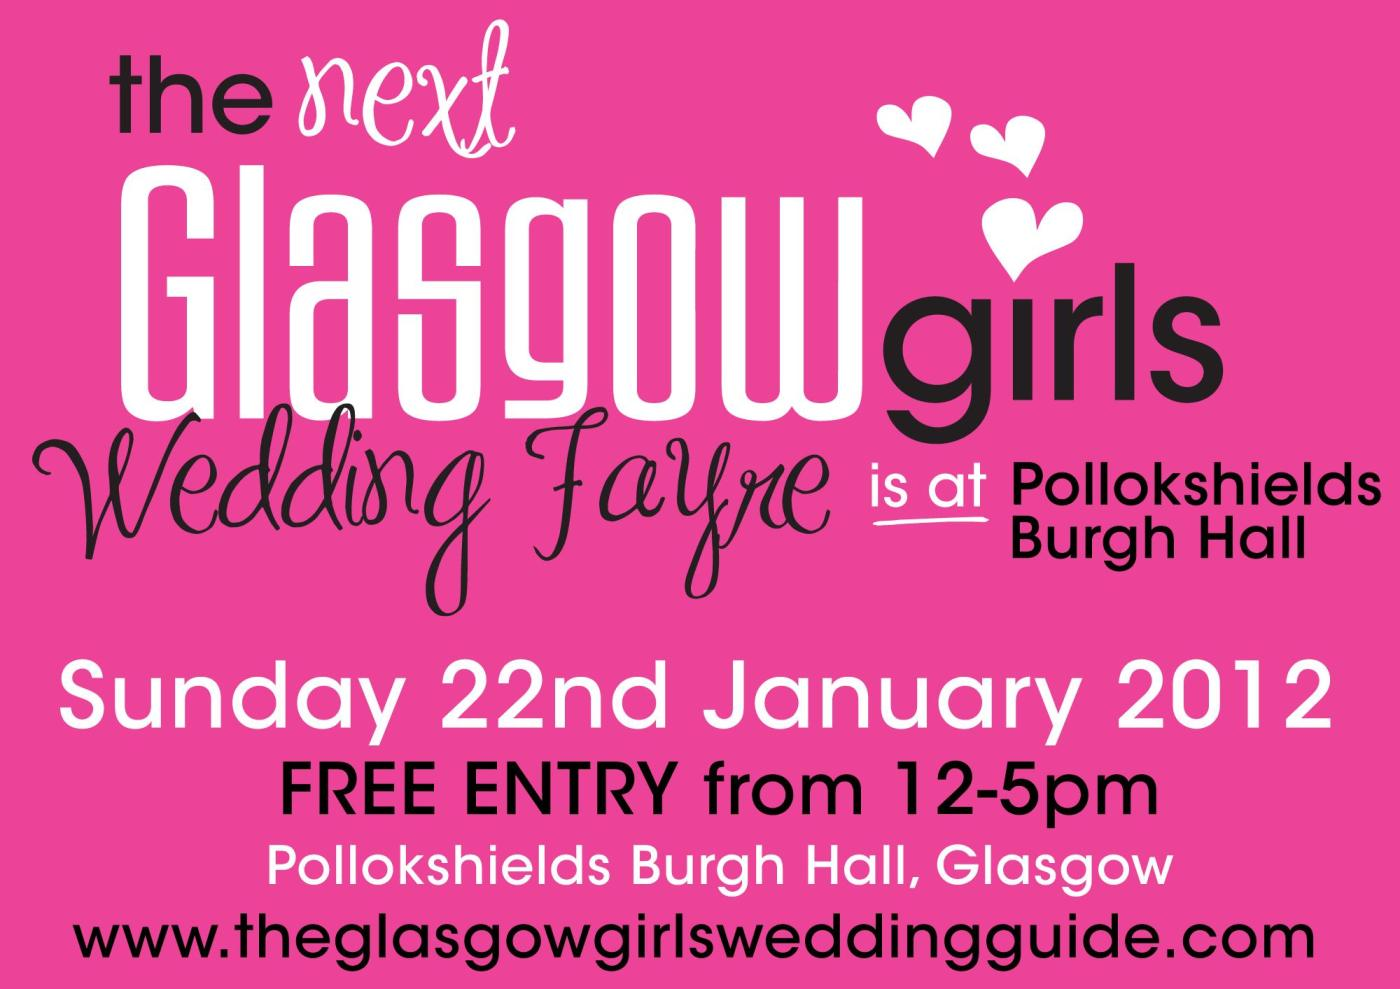 Glasgow Girls Wedding Fayre Flyer for 22nd January 2012